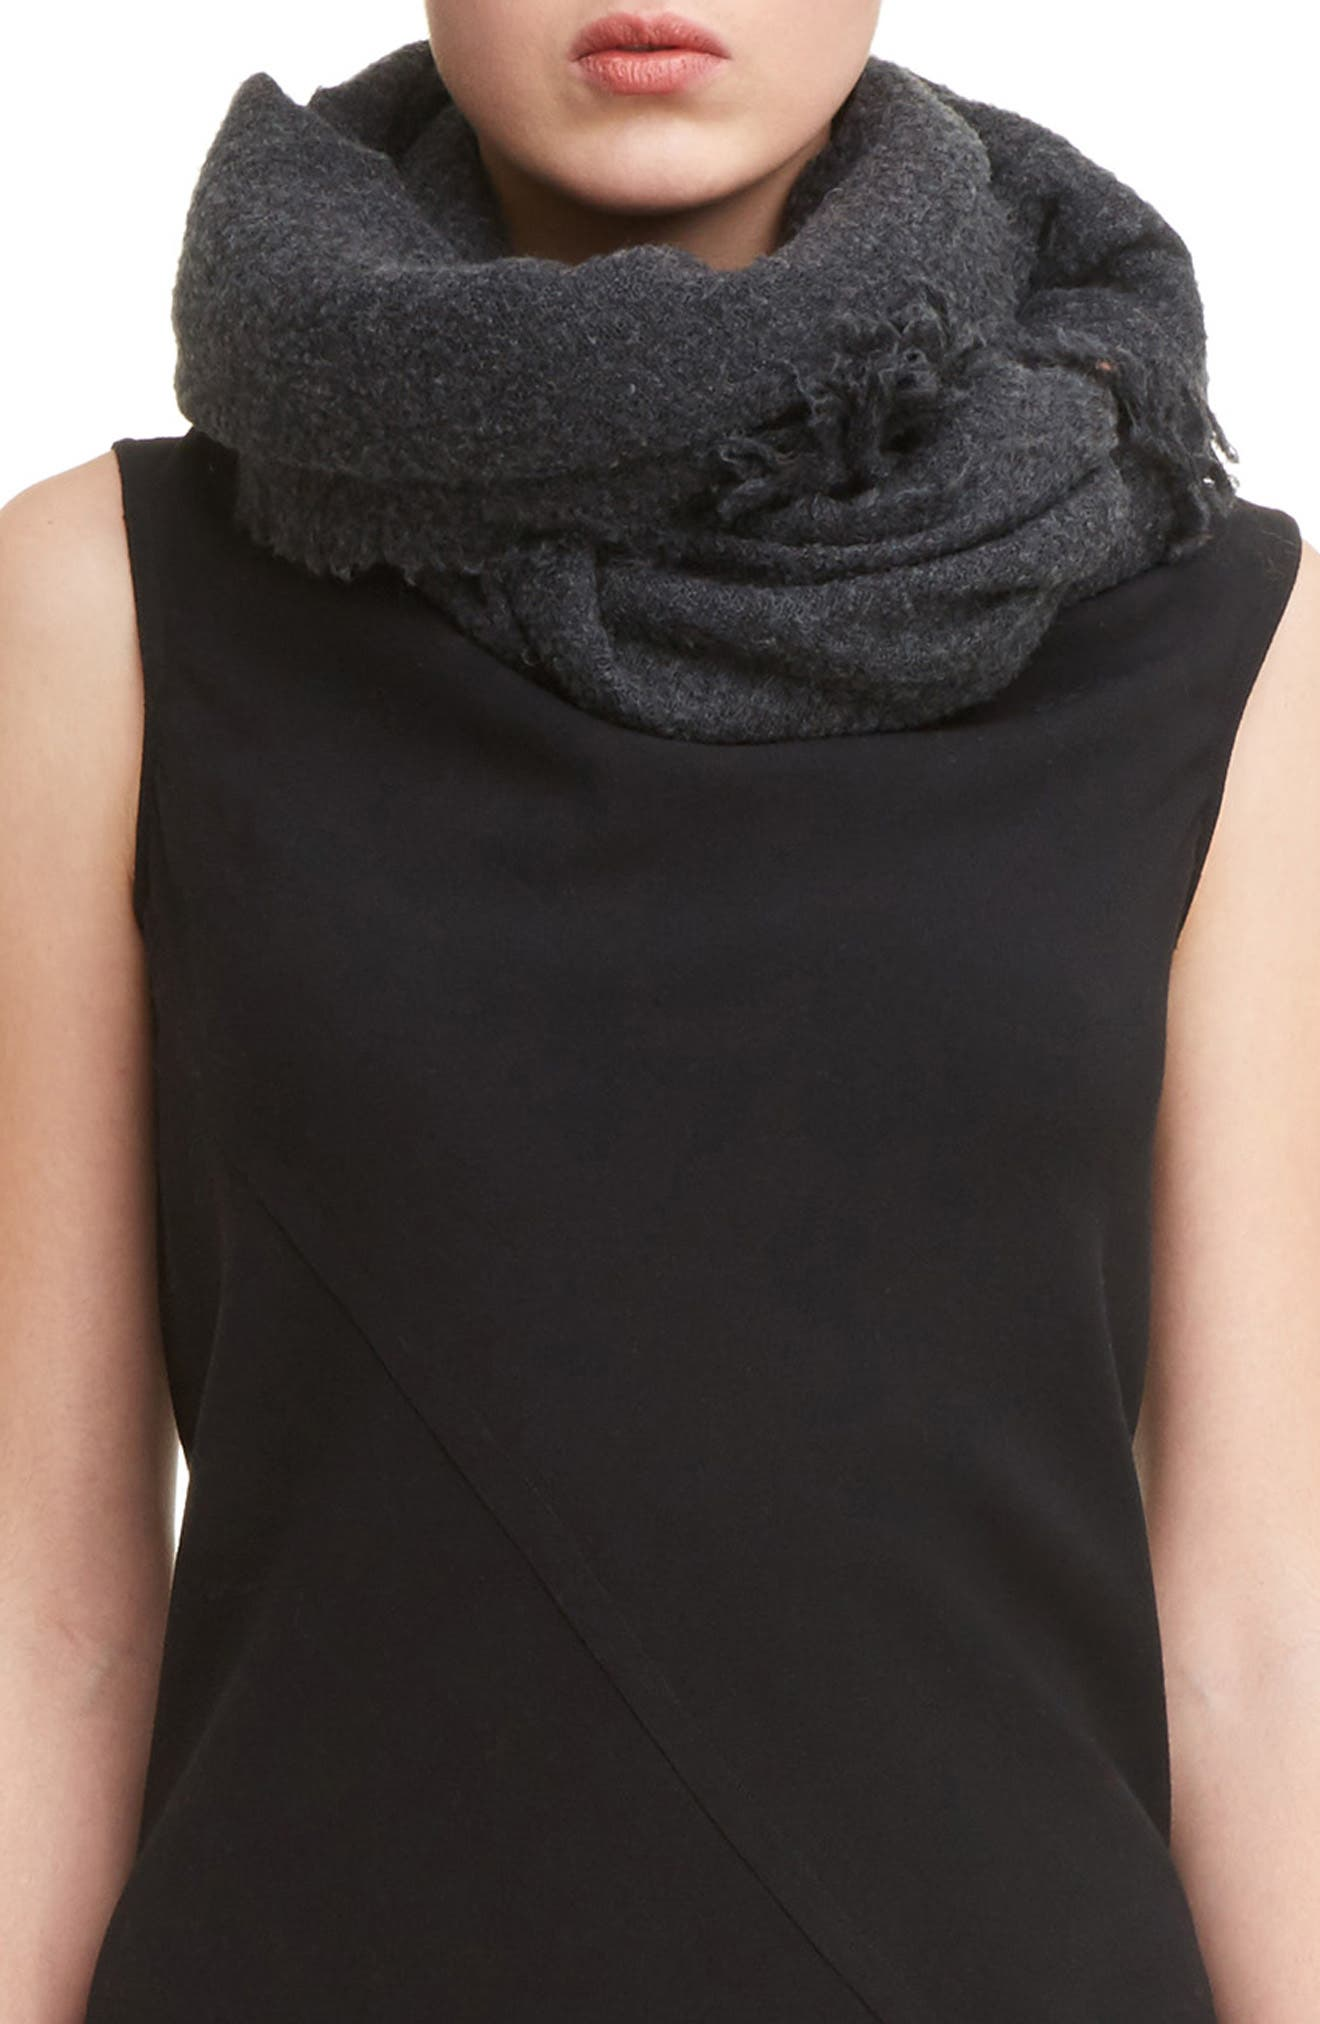 Wool Blend Scarf,                             Main thumbnail 1, color,                             Anthracite